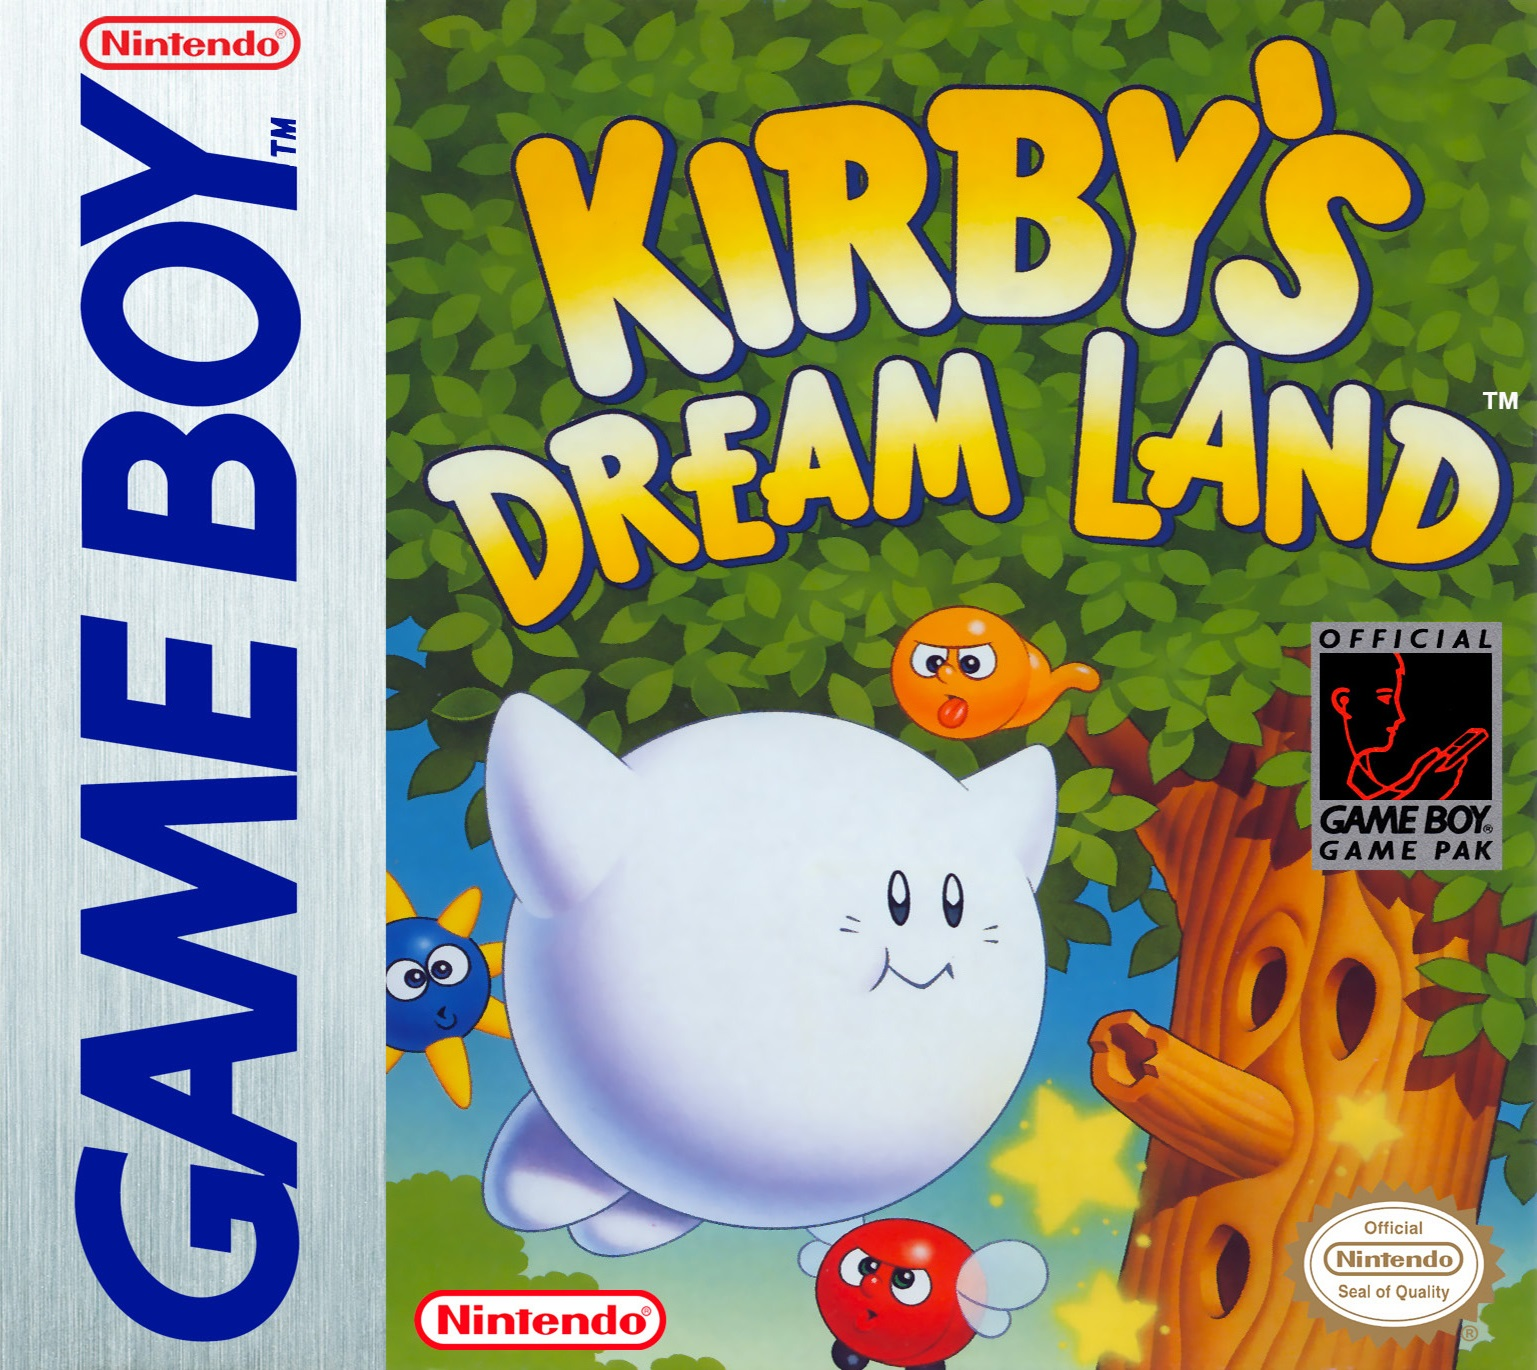 Archivo:Kirby Dream Land.jpg